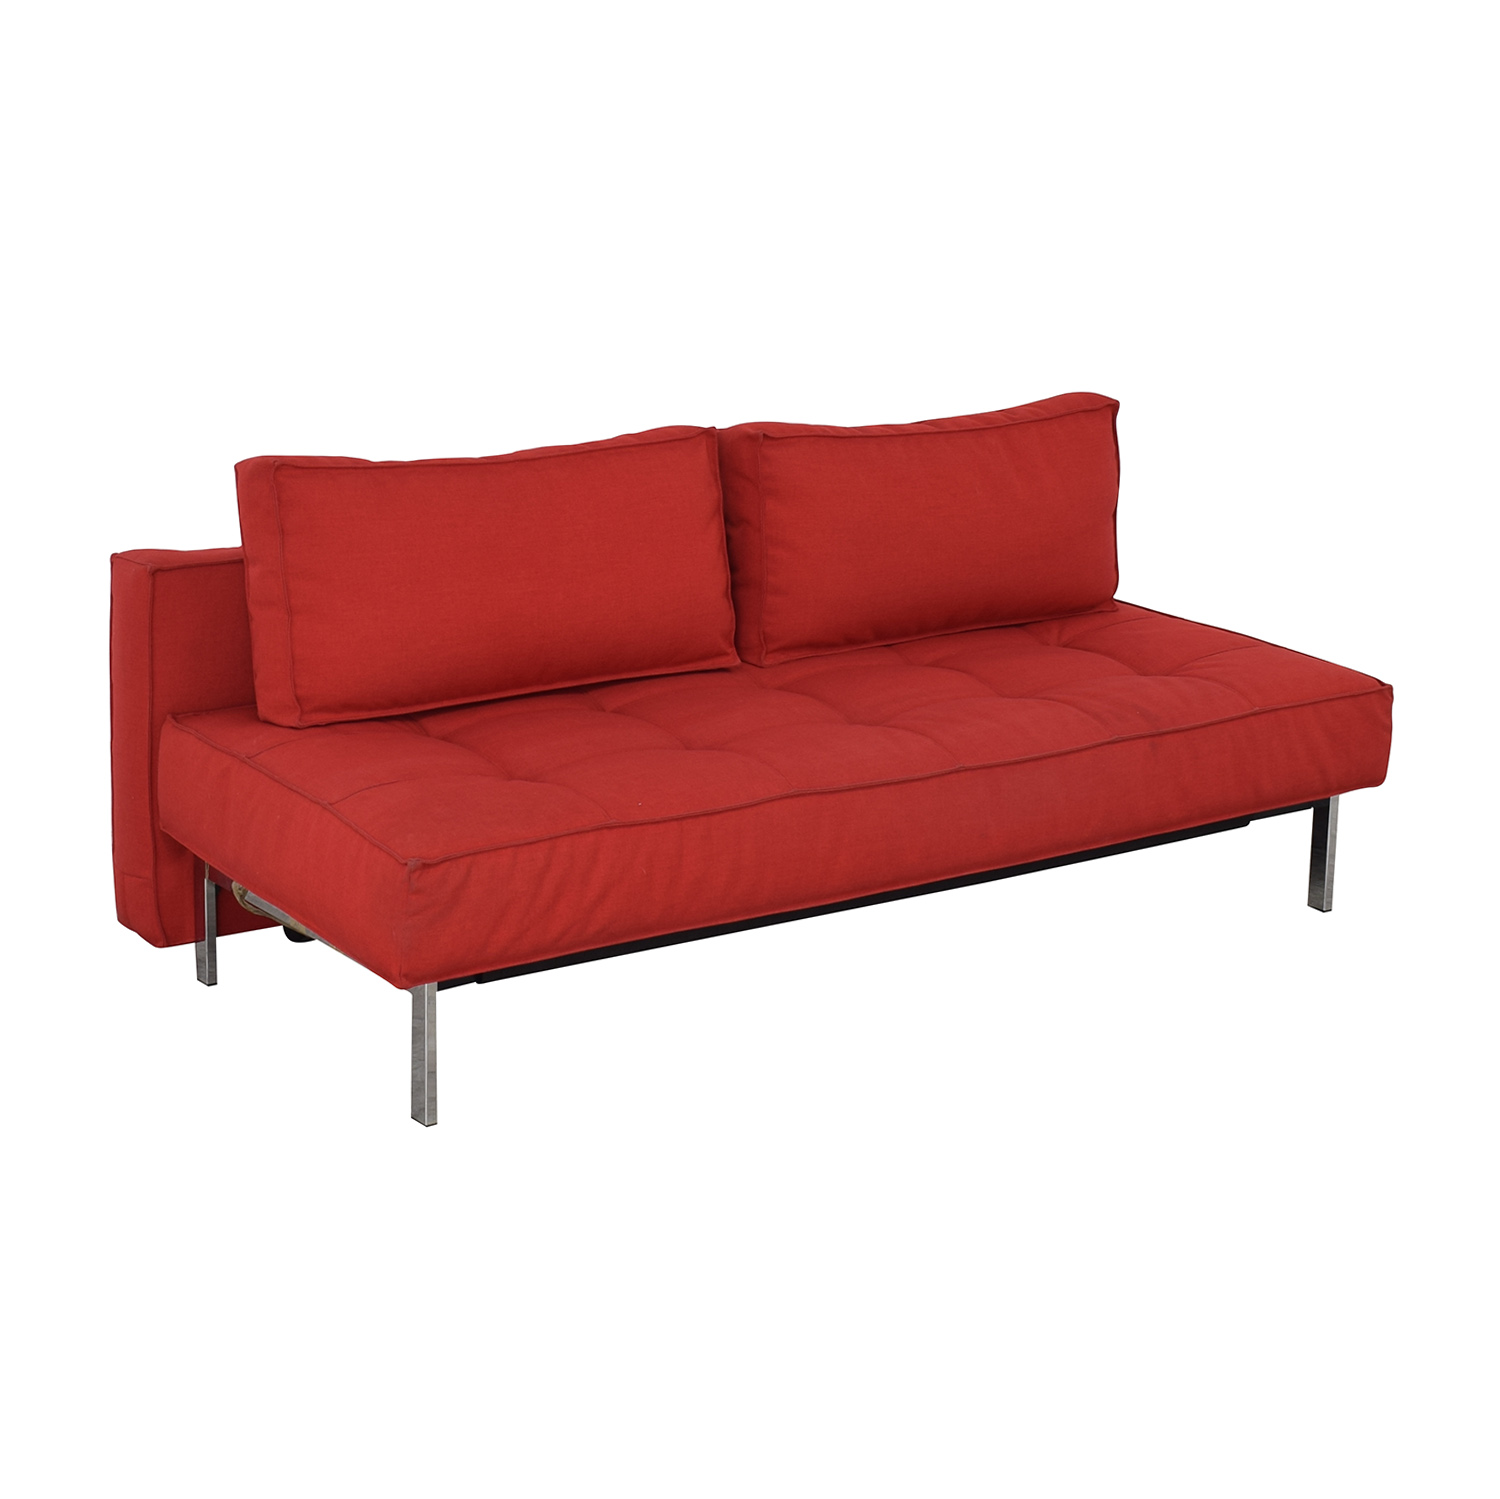 Innovation Living Innovation Living Red Tufted Twin Sleeper Sofa used